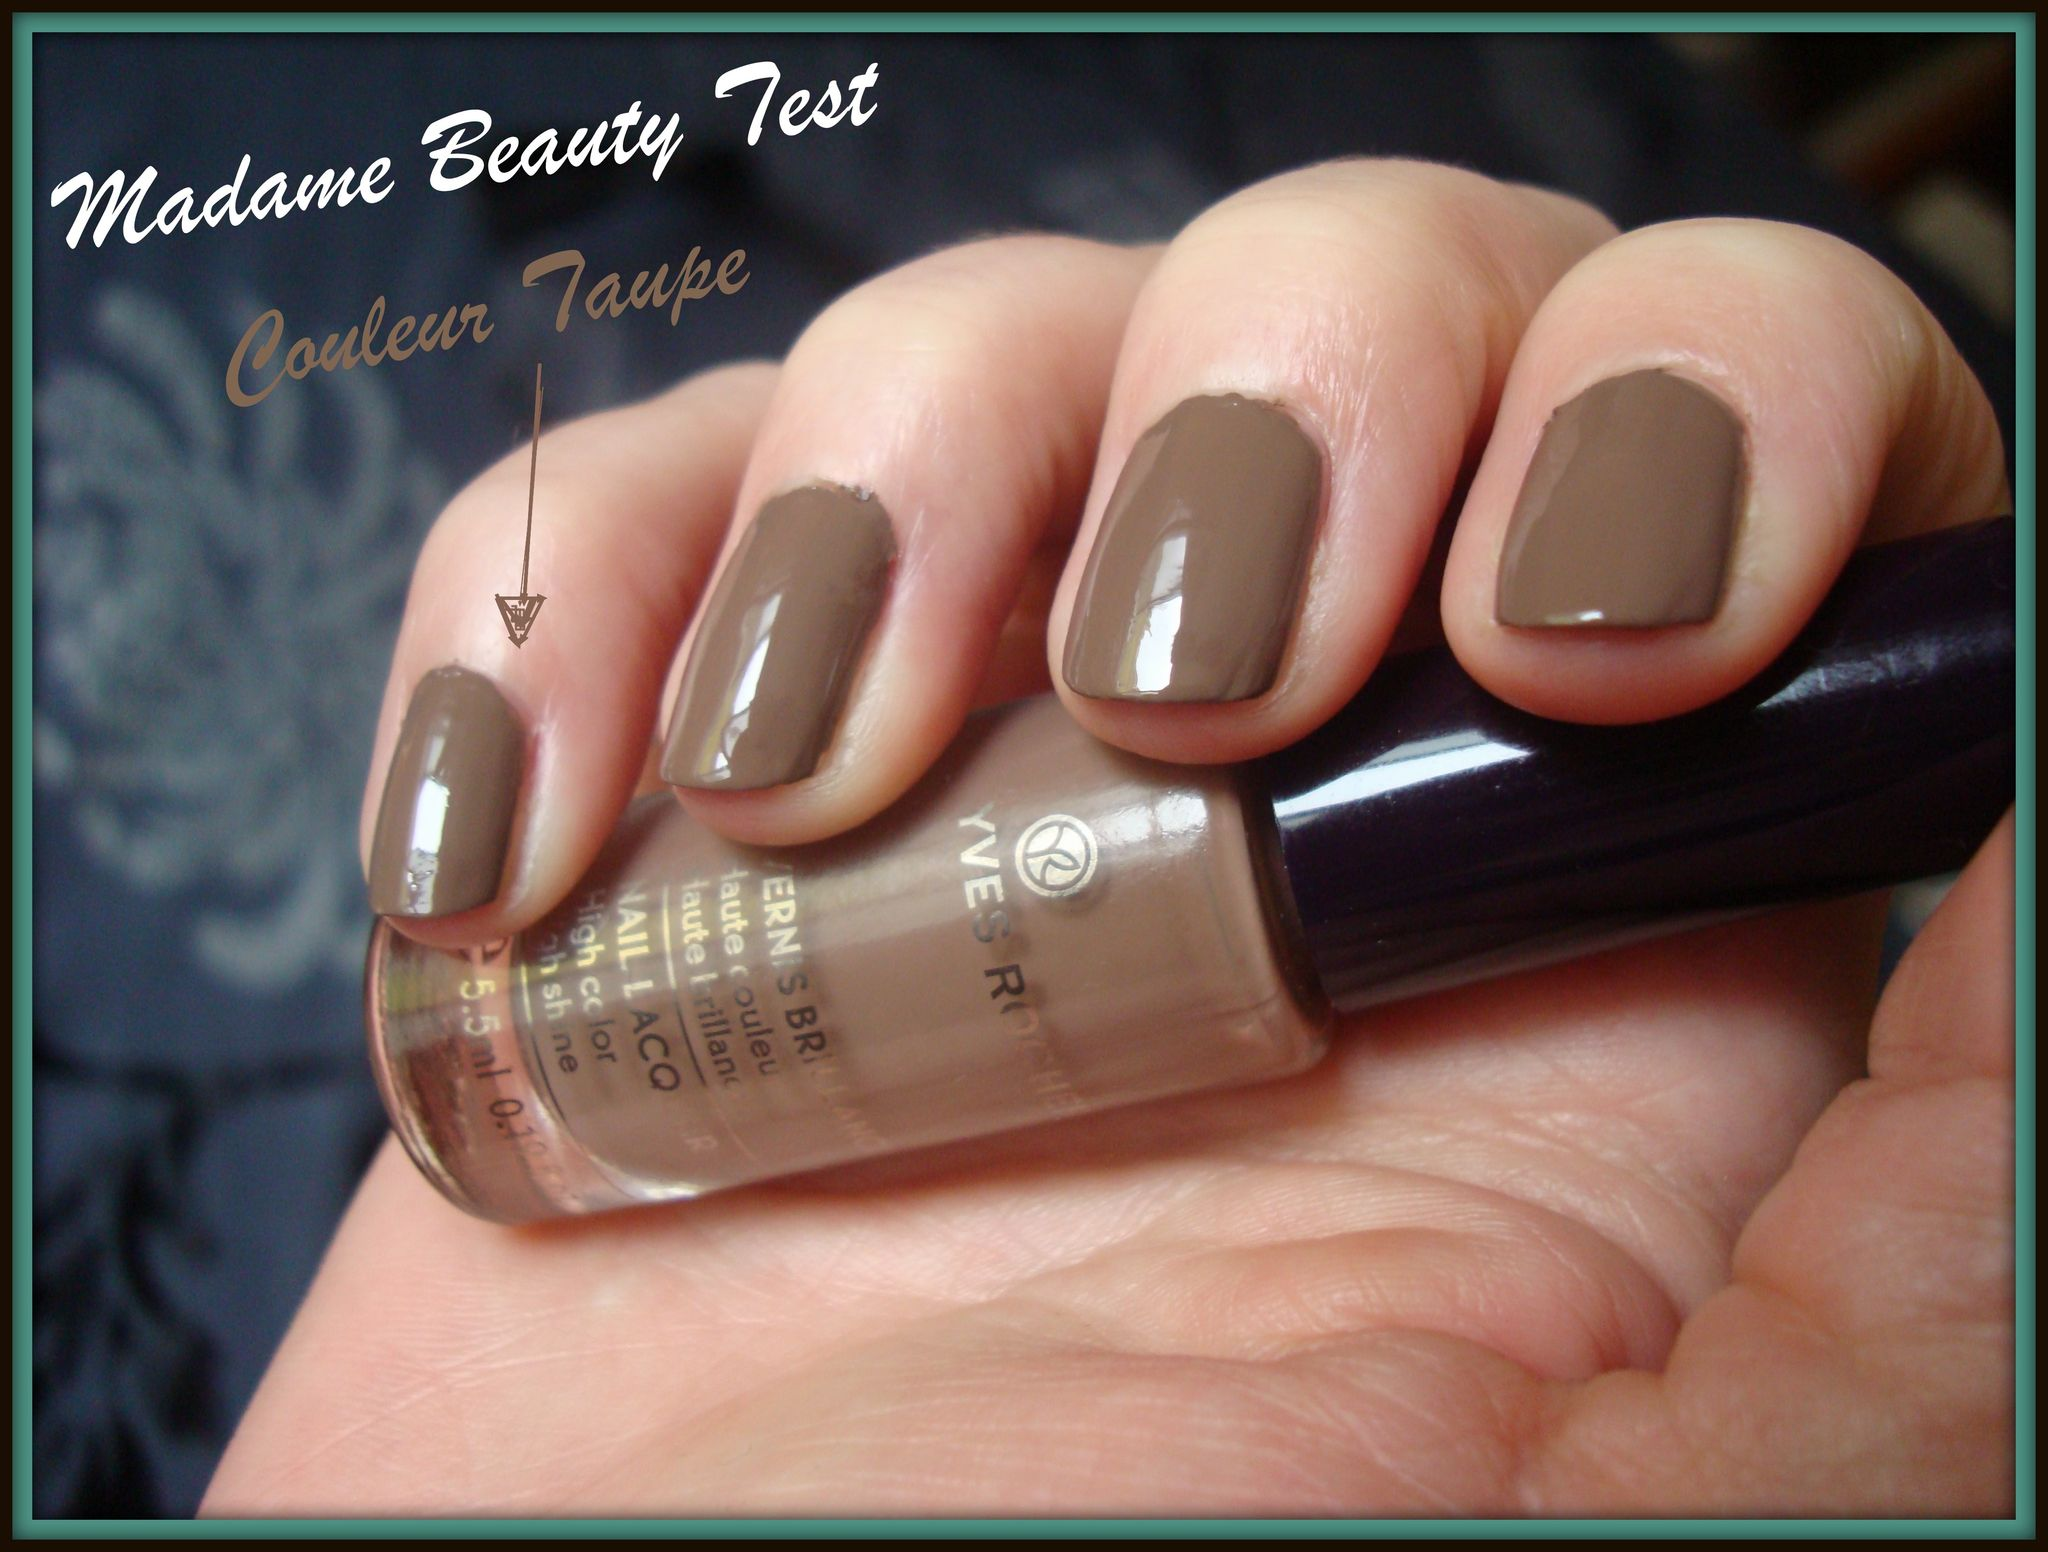 Test_vernis_Yves_Rocher_00